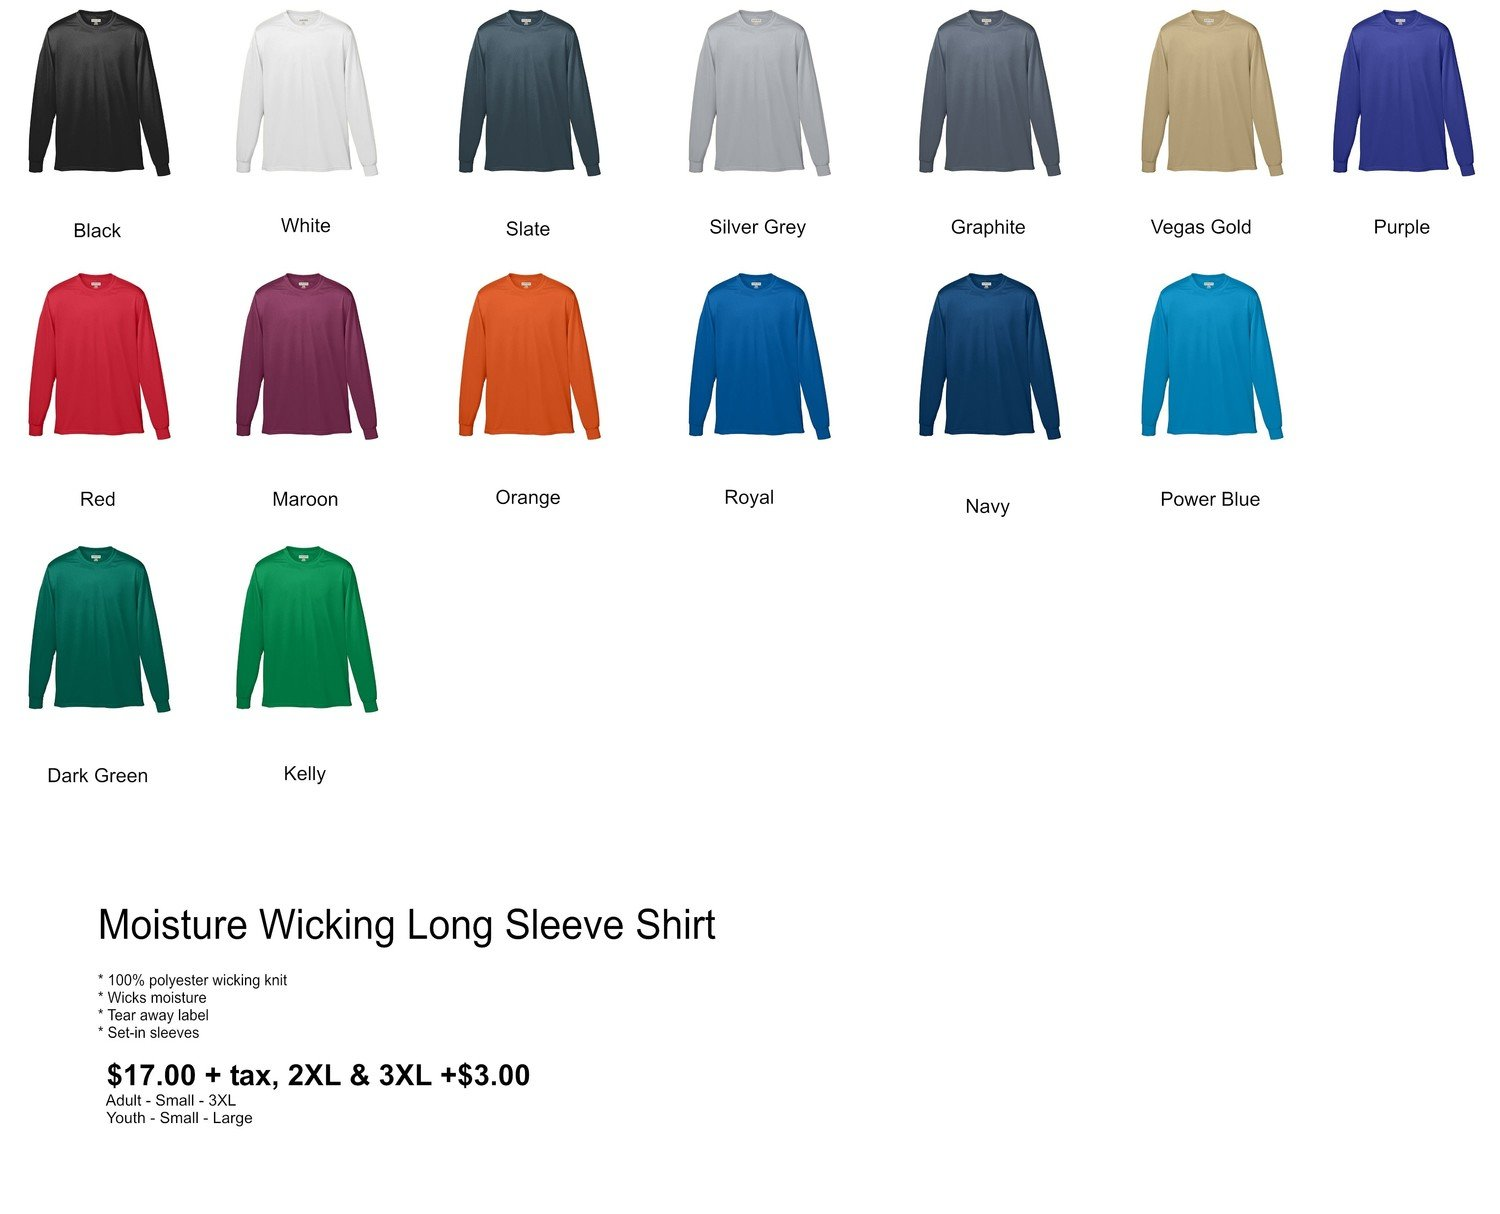 Moisture Wicking Long Sleeve Shirt